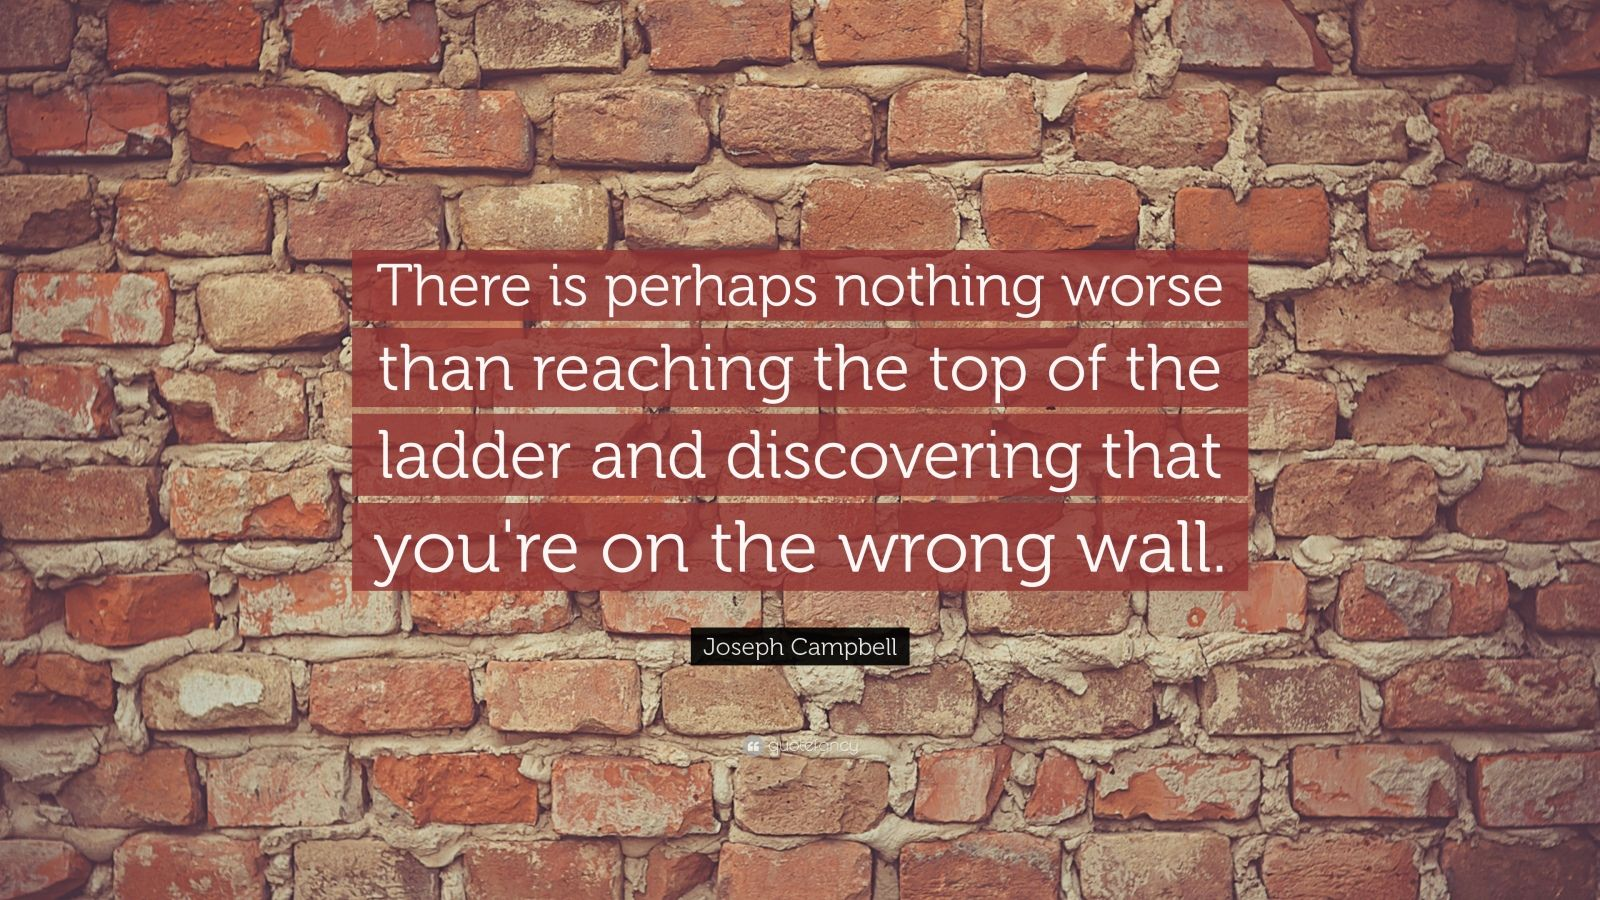 """Joseph Campbell Quote: """"There is perhaps nothing worse than reaching the top of the ladder and discovering that you're on the wrong wall."""""""